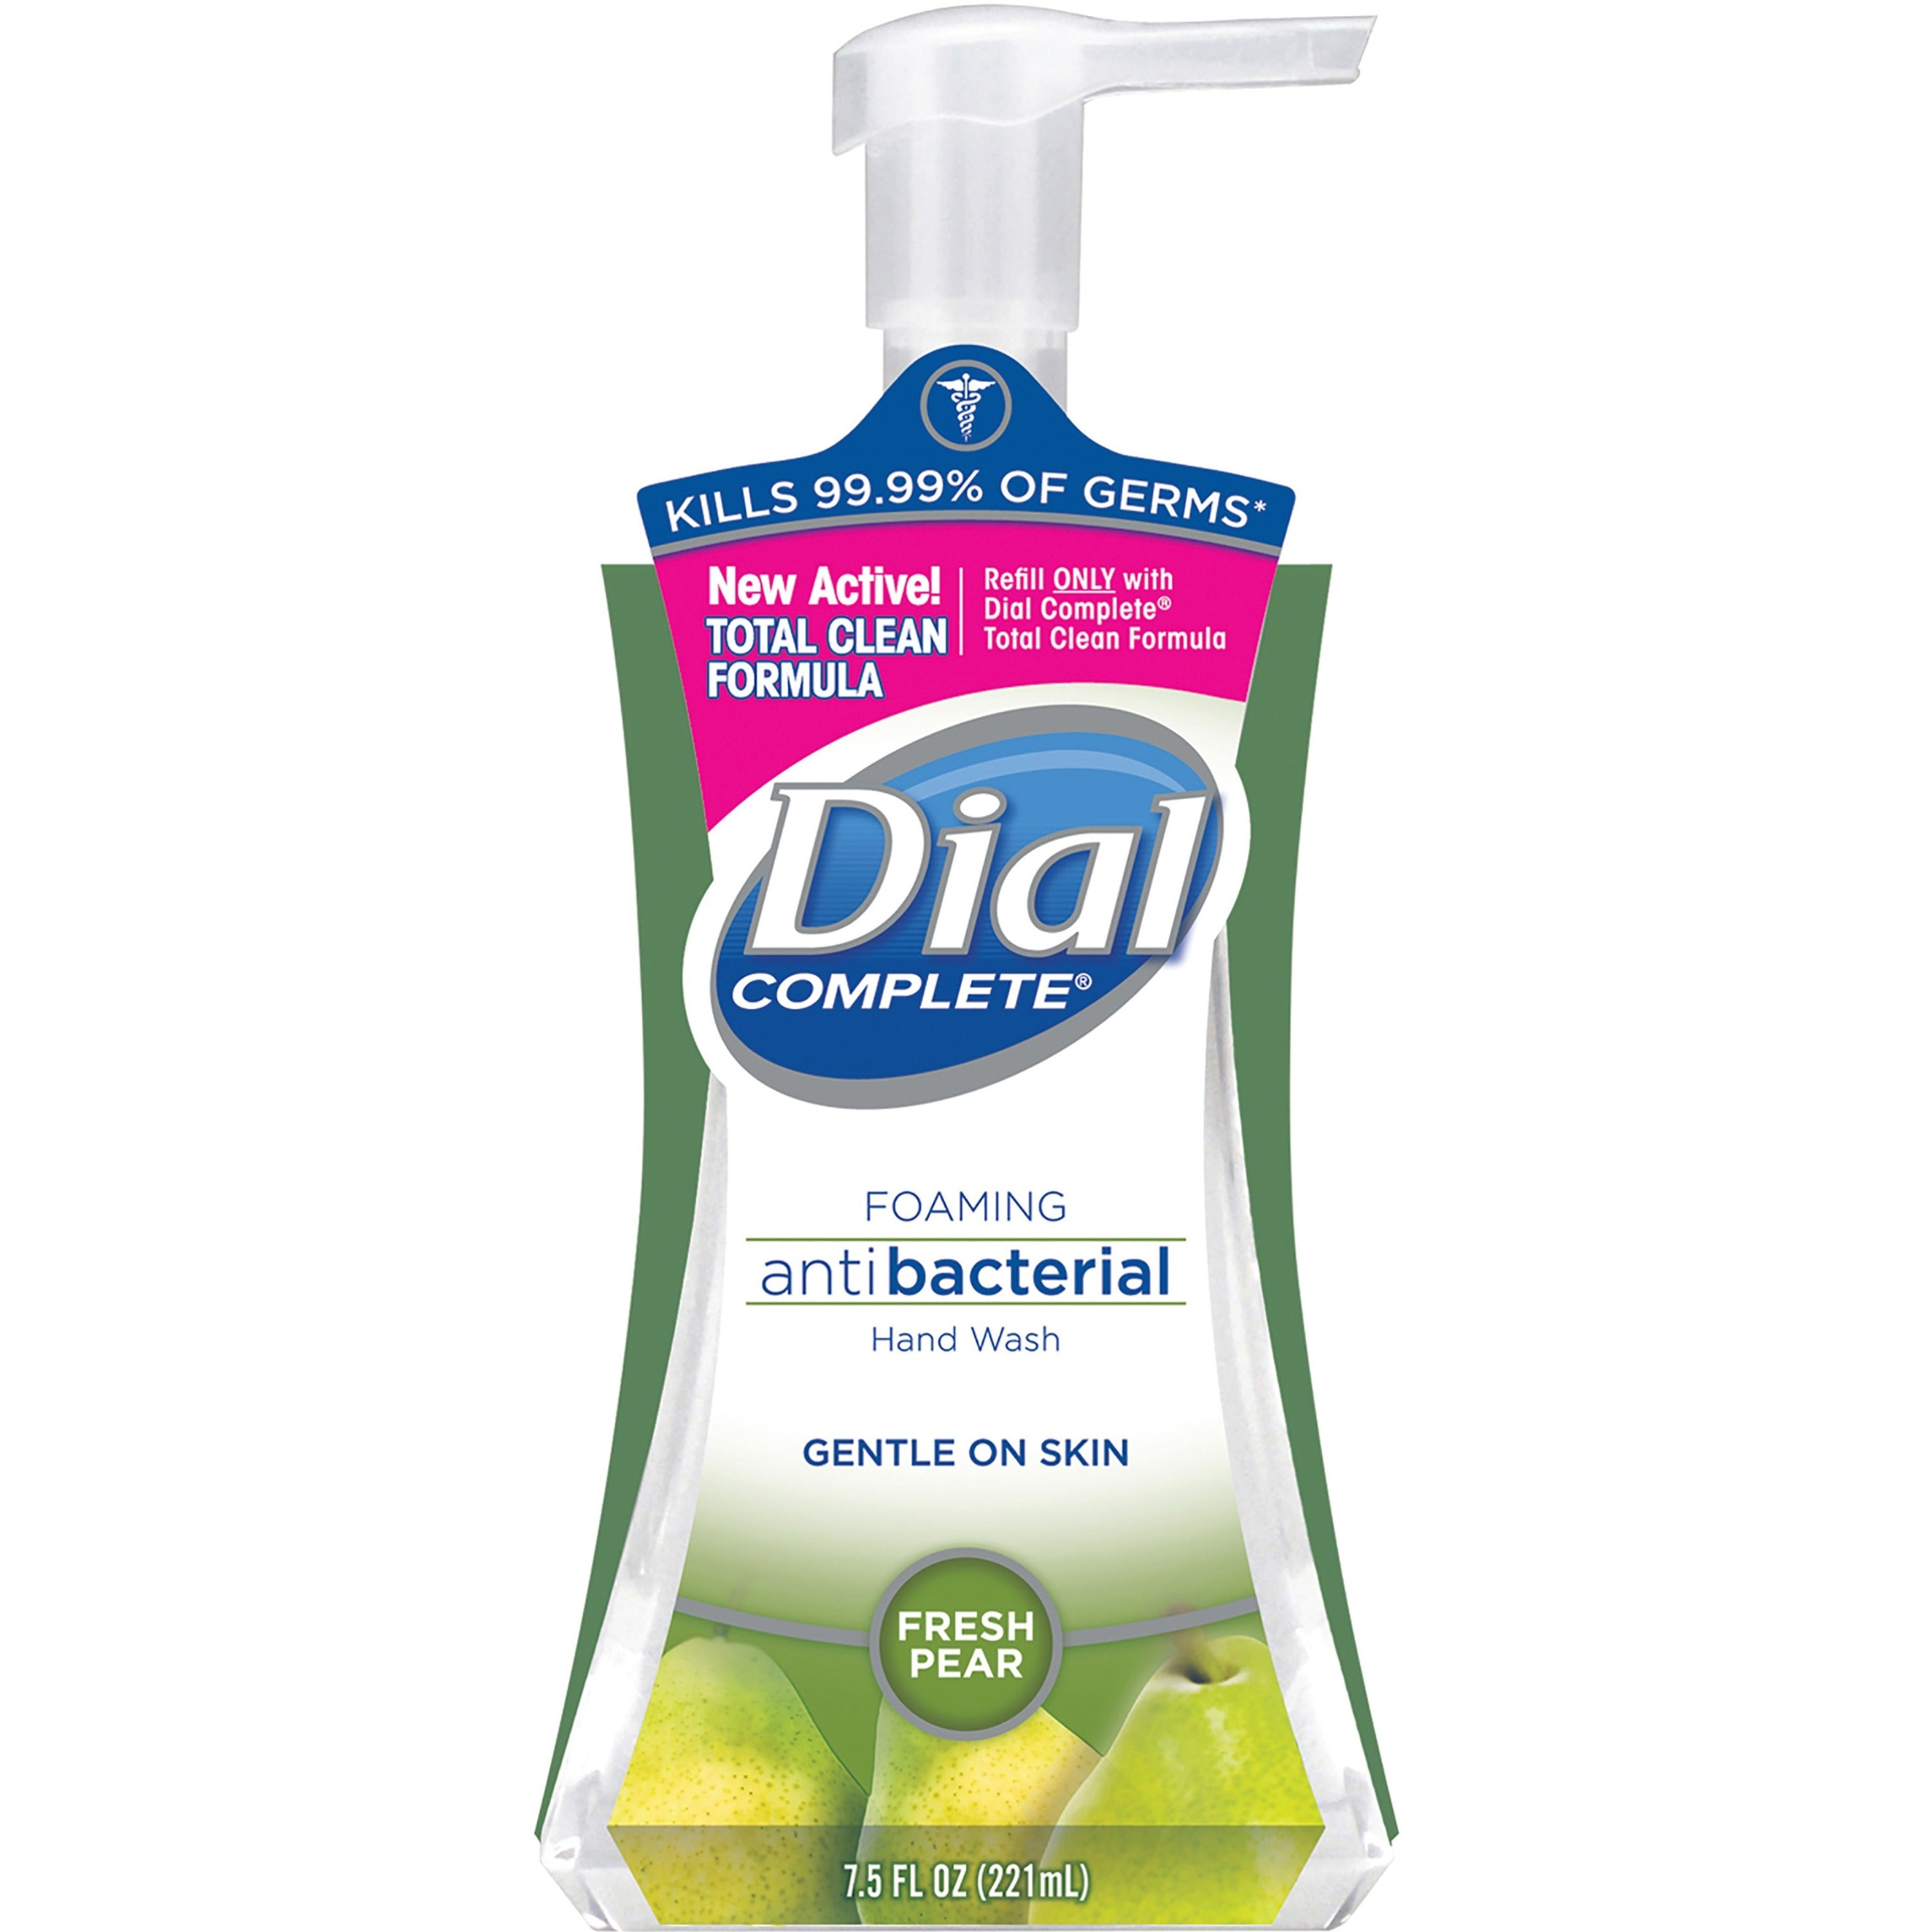 Dial Antibacterial Foaming Fresh Pear Hand Soap 7.5oz